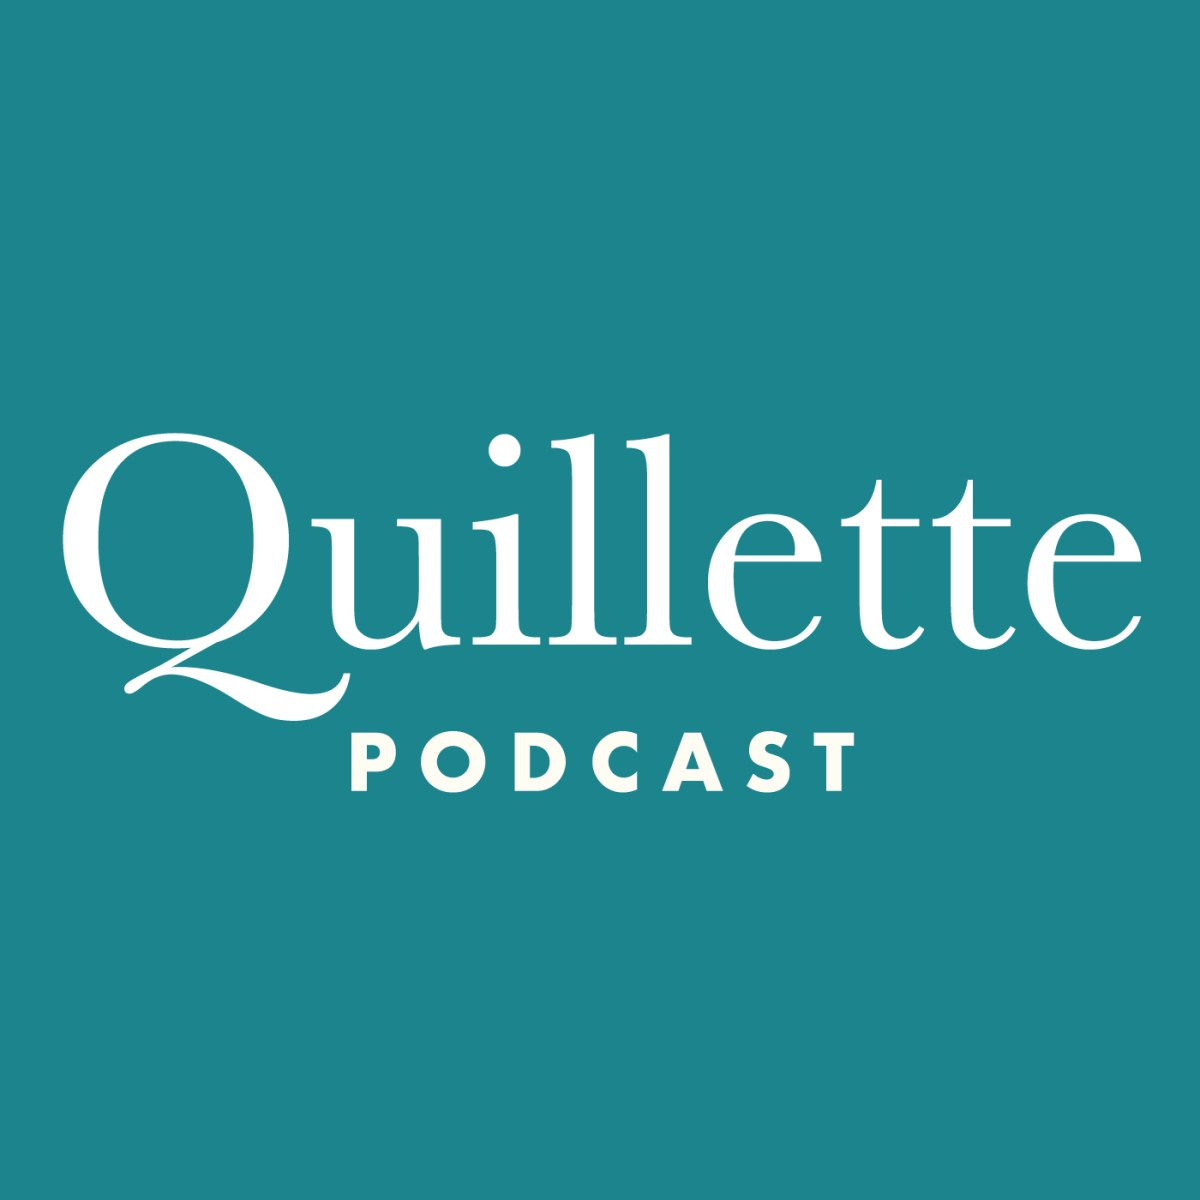 Quillette Podcast 1 - Jordan Peterson on the Dreadful Attraction of Utopian Ideas